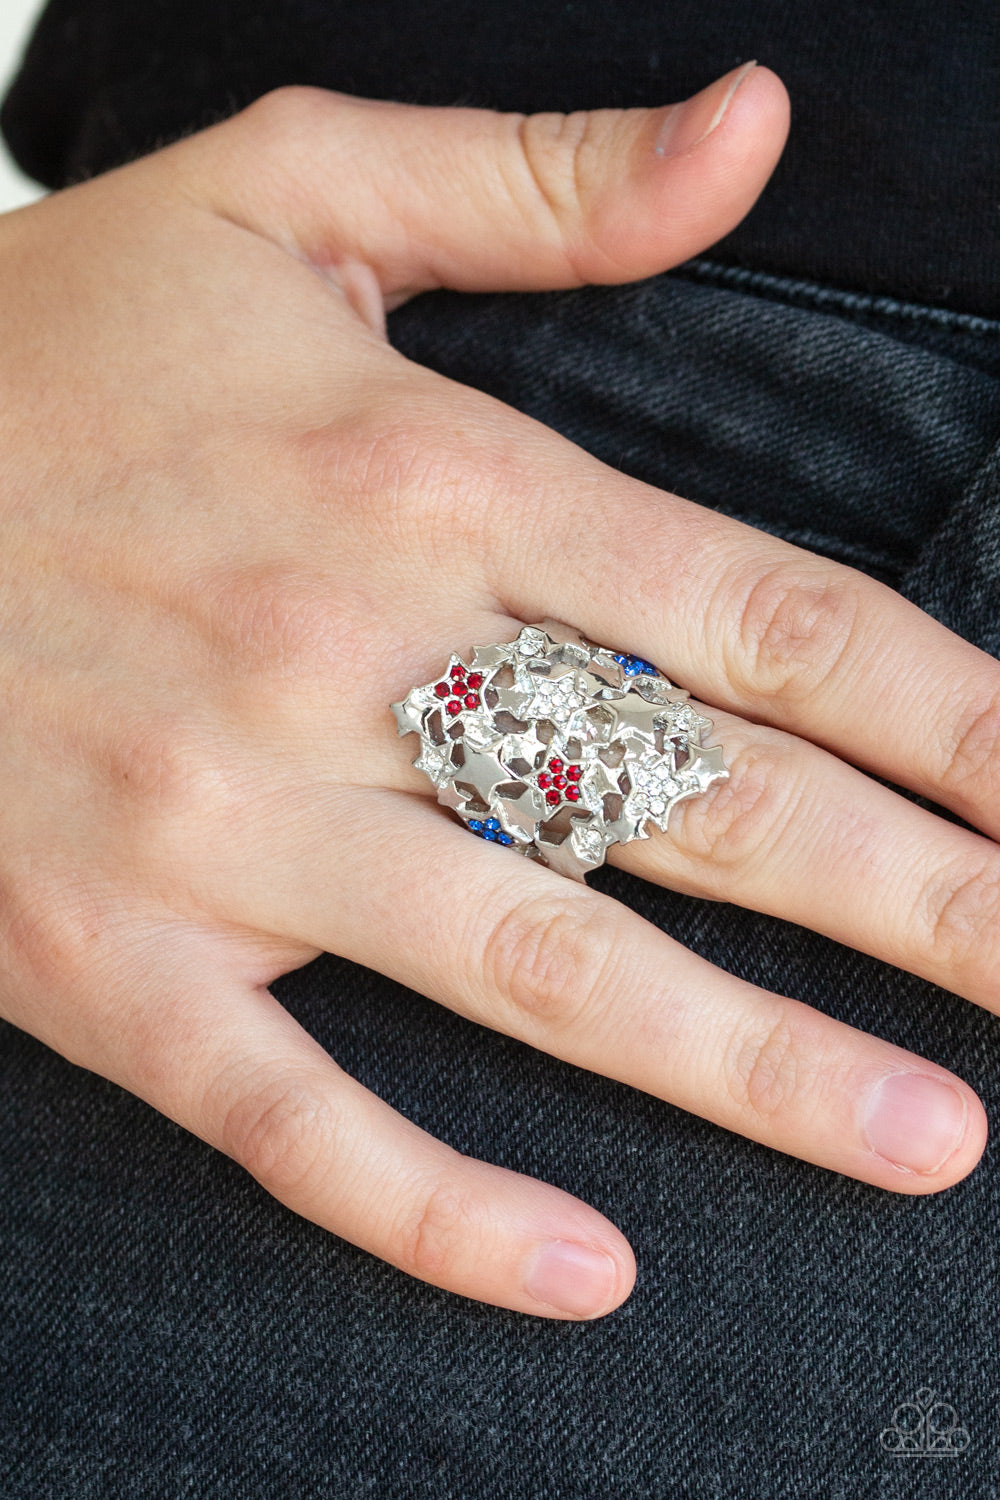 Star-tacular, Star-tacular - Multi Paparazzi Ring - Pink Dragon Jewels